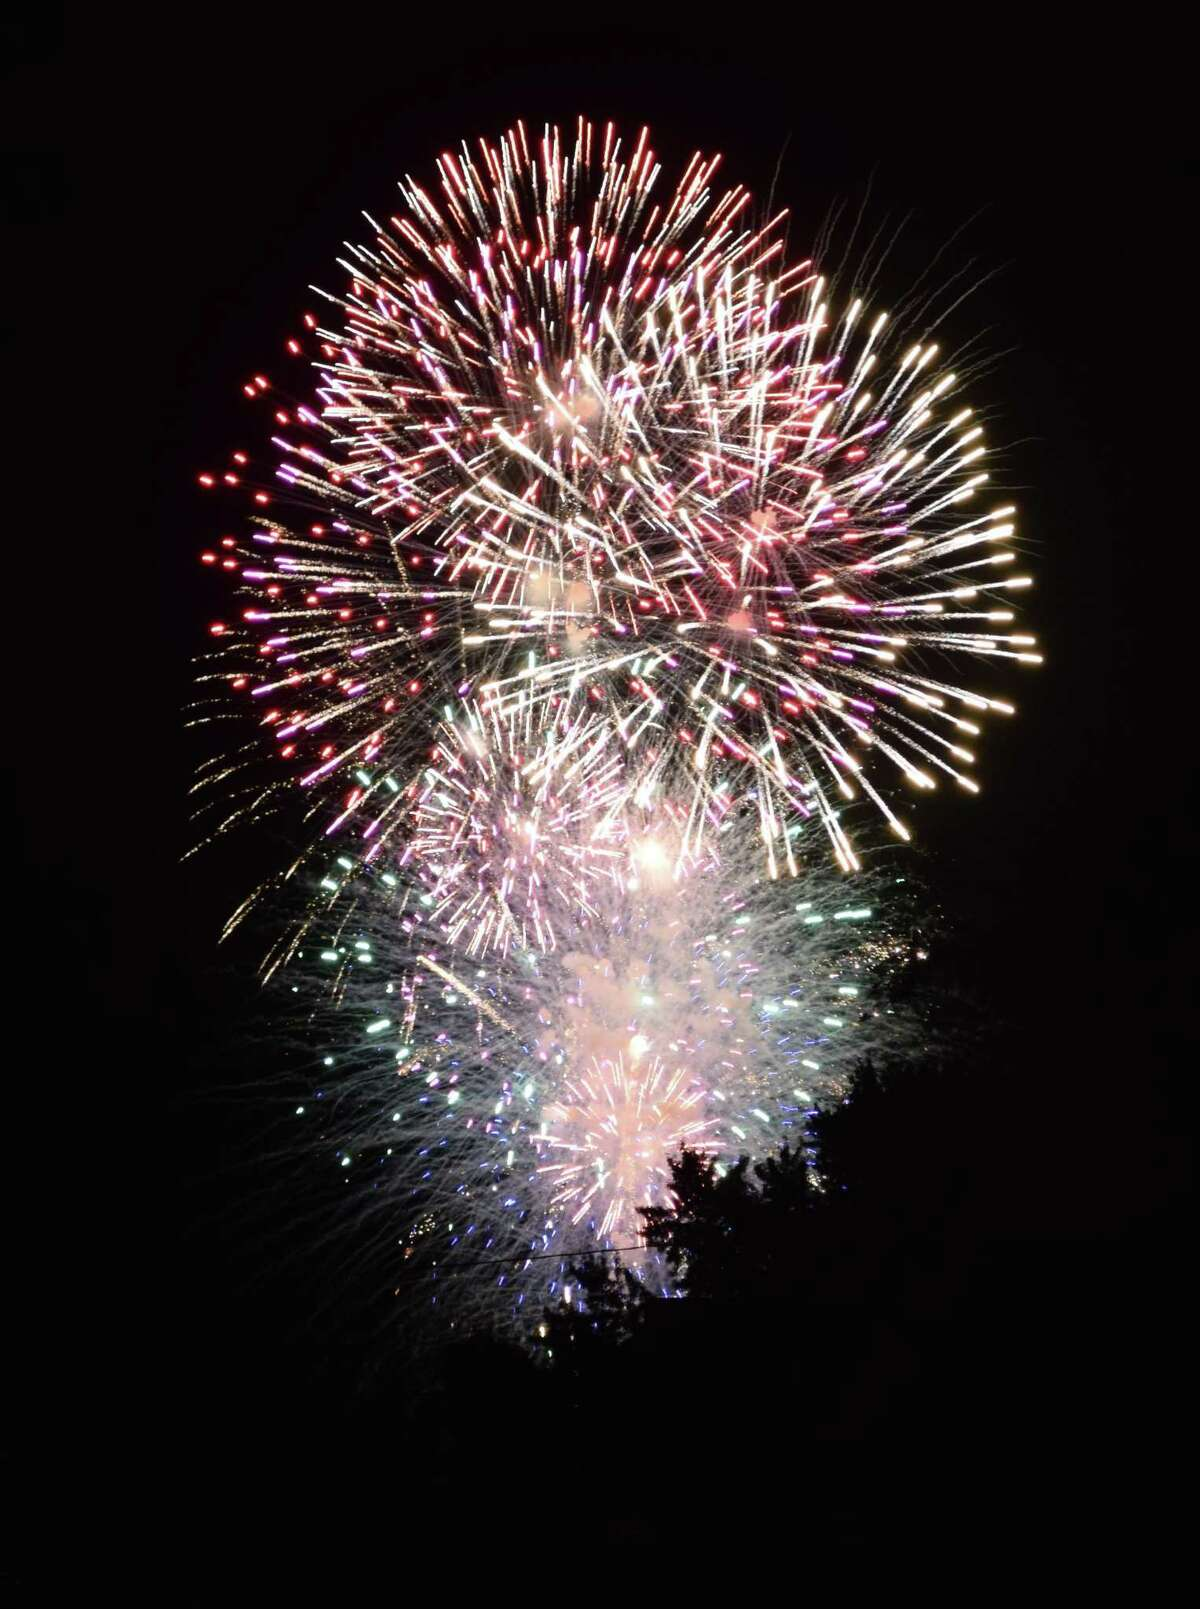 A highlight of the 50th annual Village Fair Days in New Milford was a fireworks display. The fireworks had been scheduled as part of the Fourth of July Celebration, organized by the Greater New Milford Chamber of Commerce, in town but was postponed to the fair due to inclement weather.